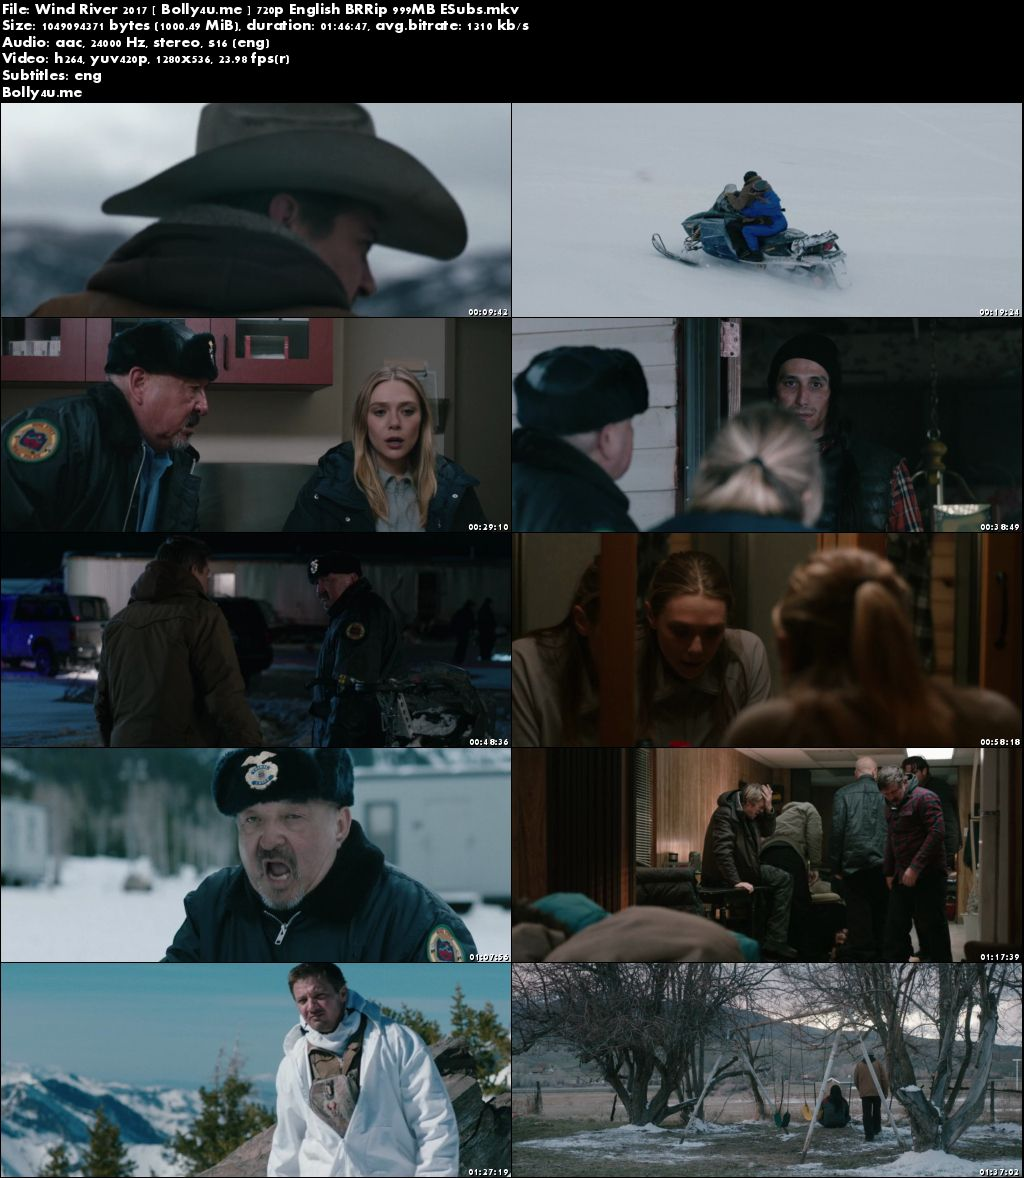 Wind River 2017 BRRip 999MB English 720p ESub Download